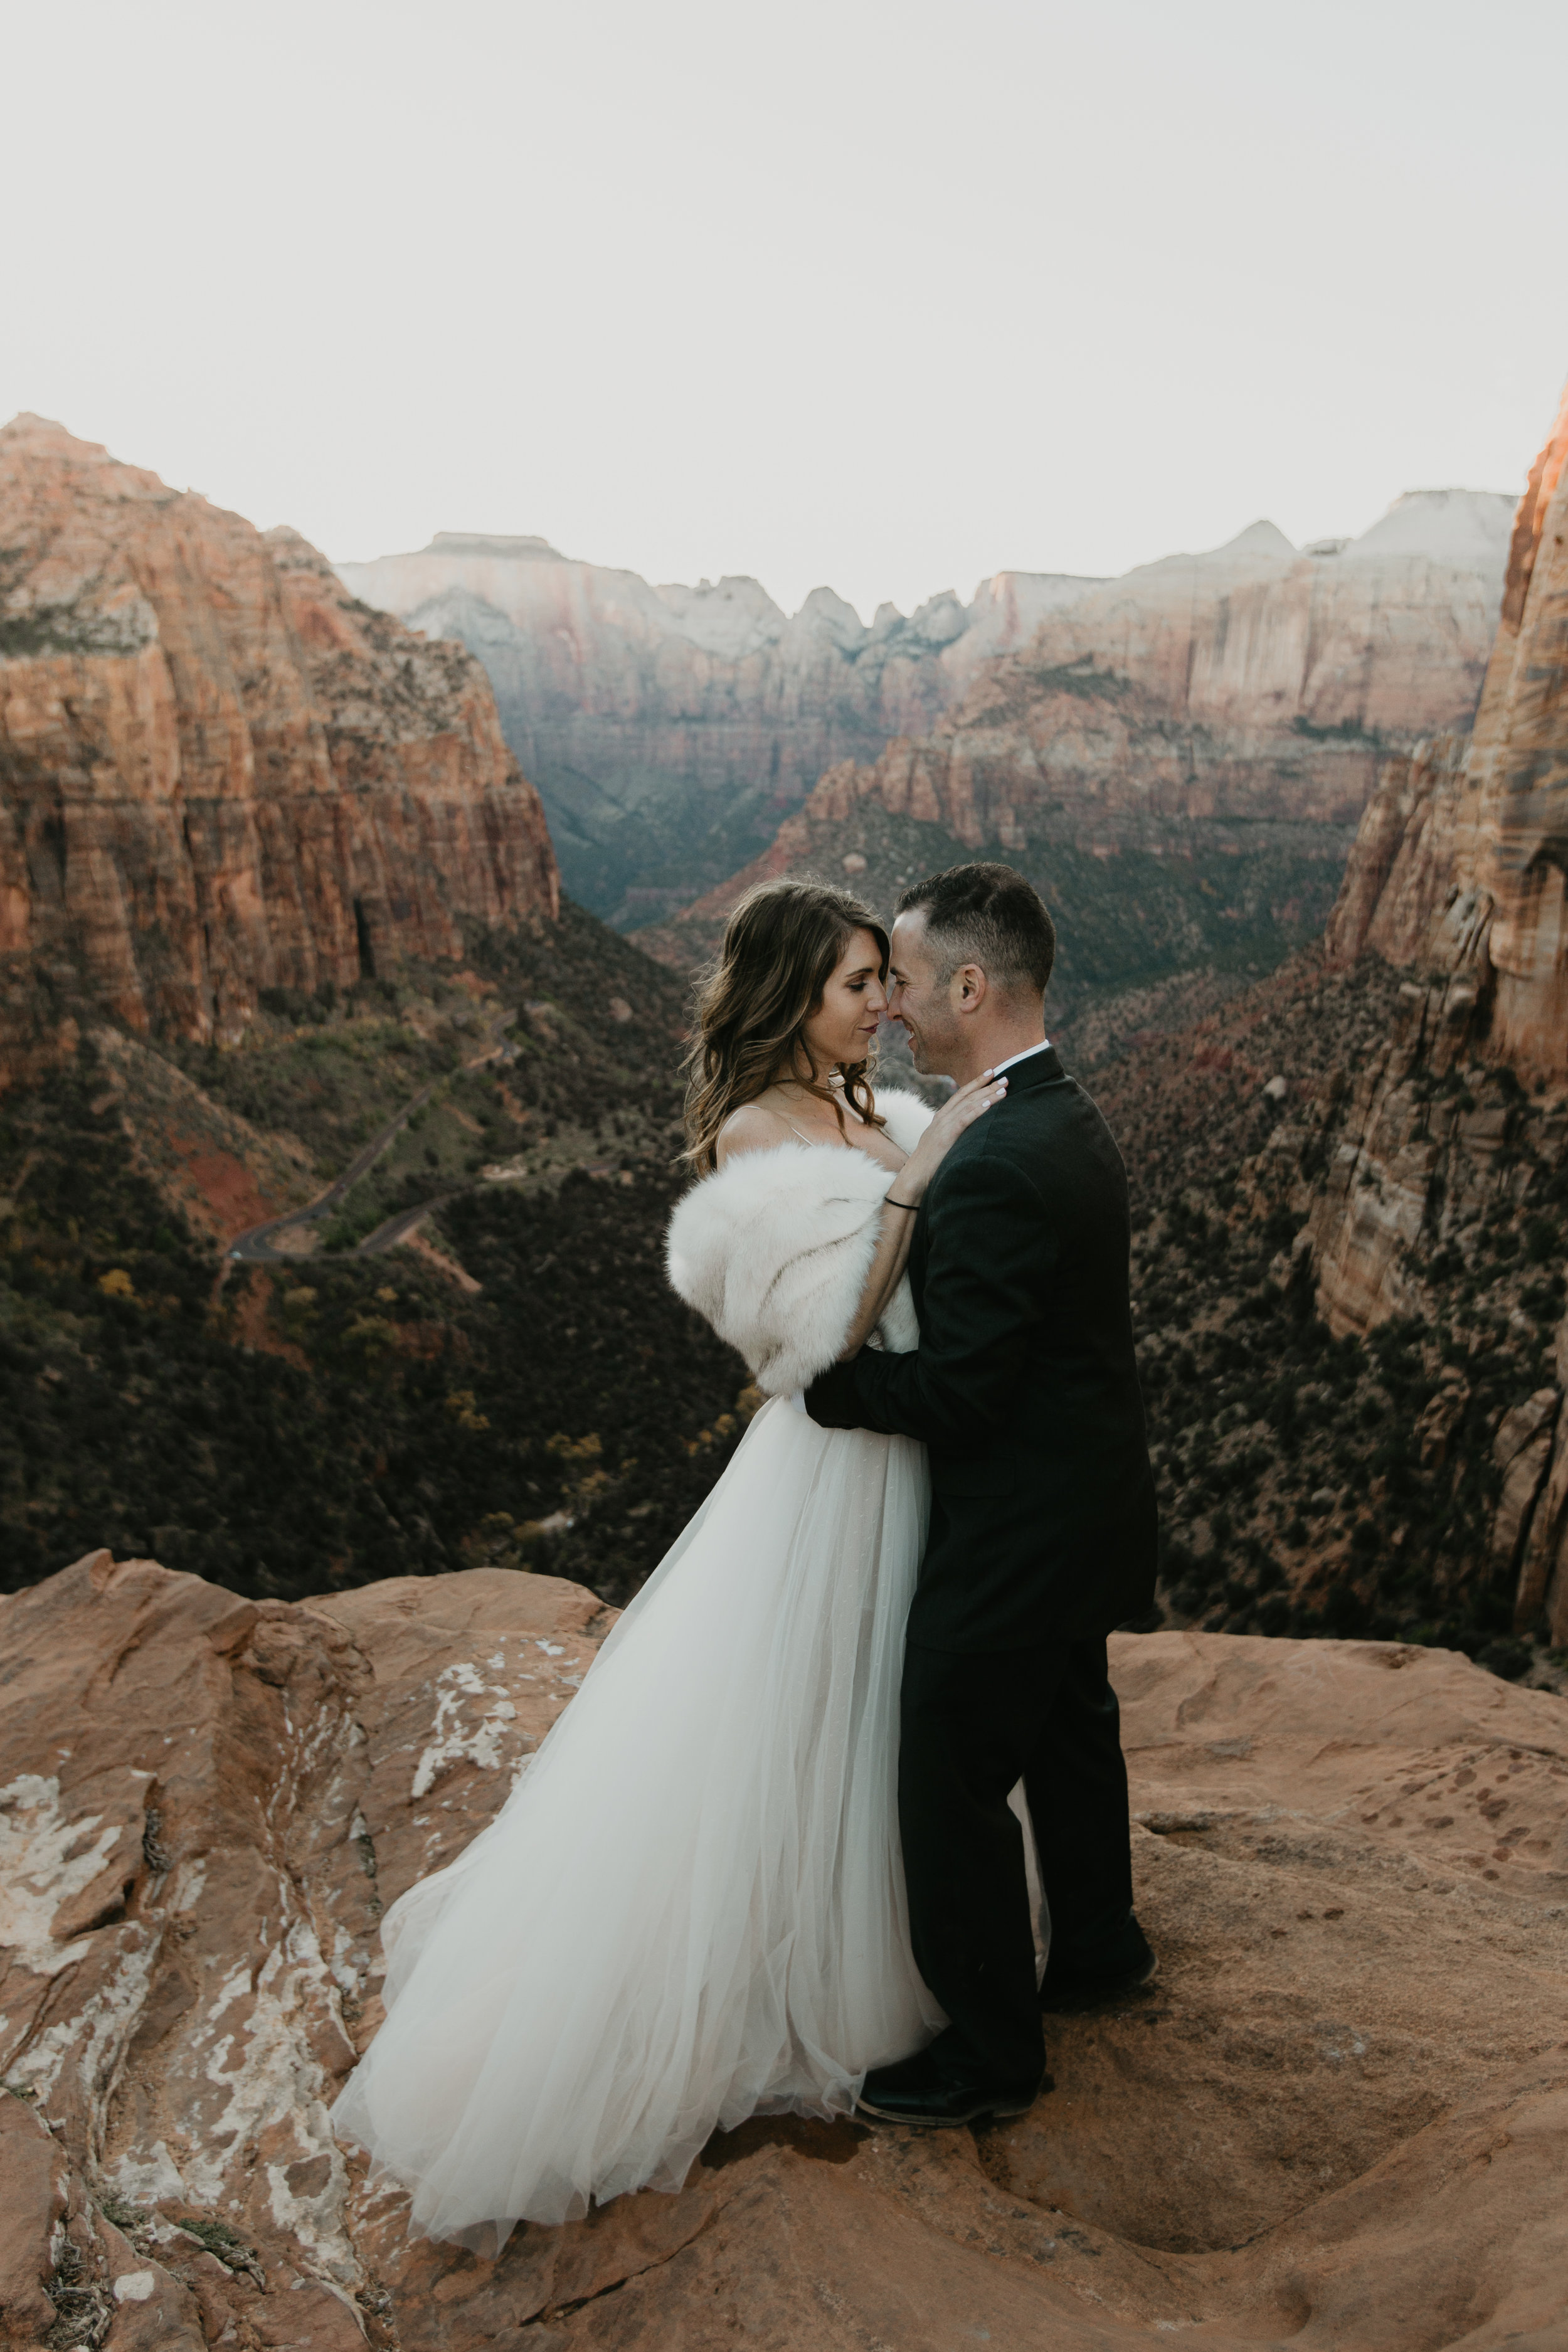 nicole-daacke-photography-zion-national-park-elopement-photographer-canyon-overlook-trail-elope-hiking-adventure-wedding-photos-fall-utah-red-rock-canyon-stgeorge-eloping-photographer-68.jpg